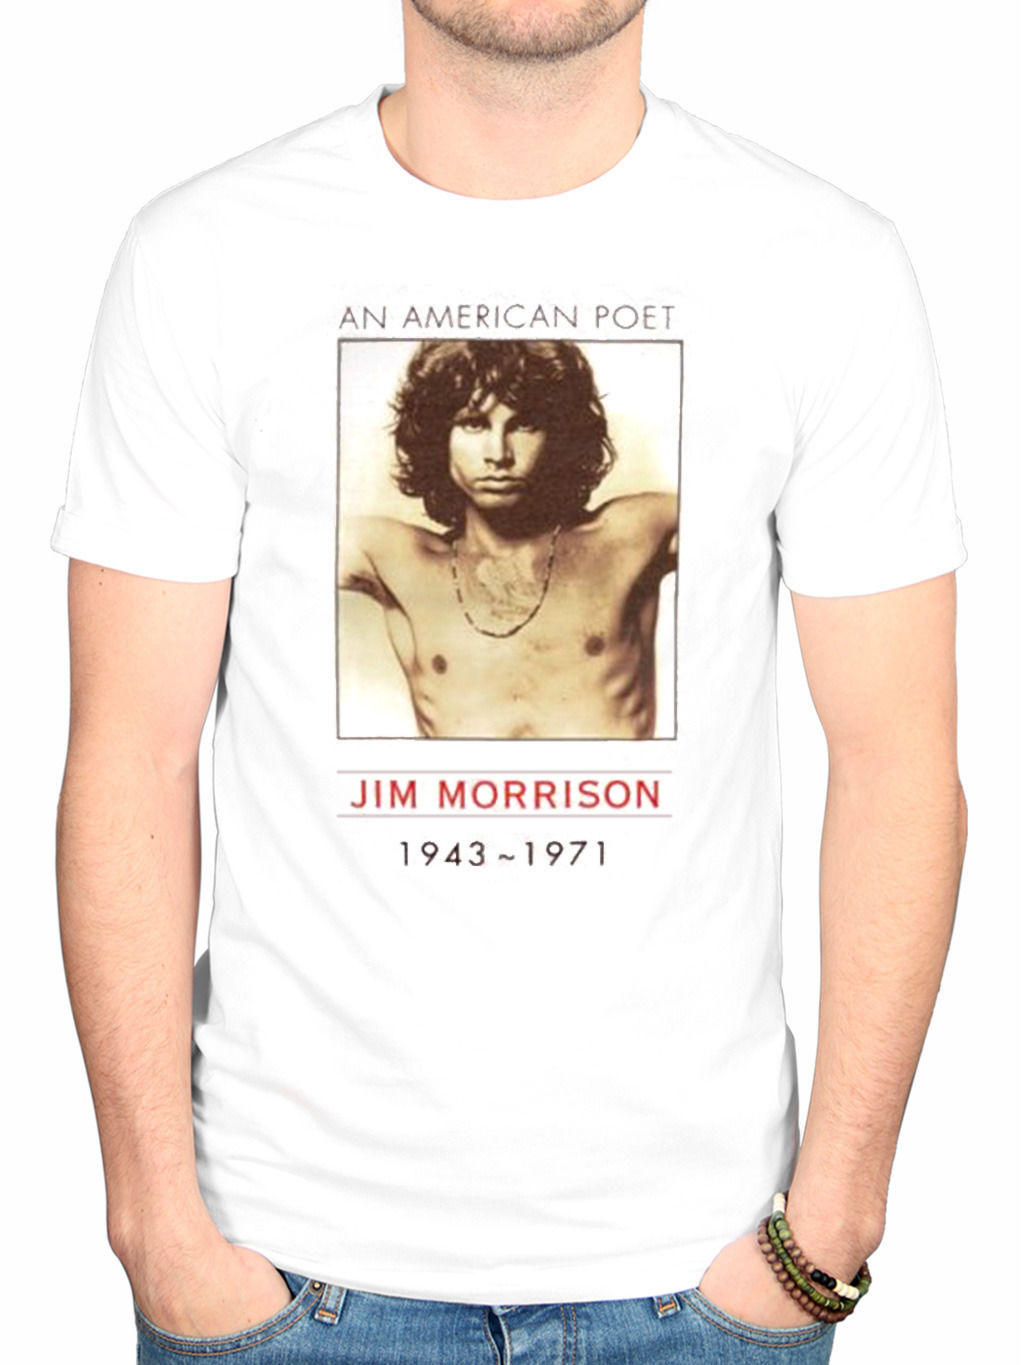 The Doors American Poet T-Shirt Band Merch Jim Morrison R.I.P Vintage